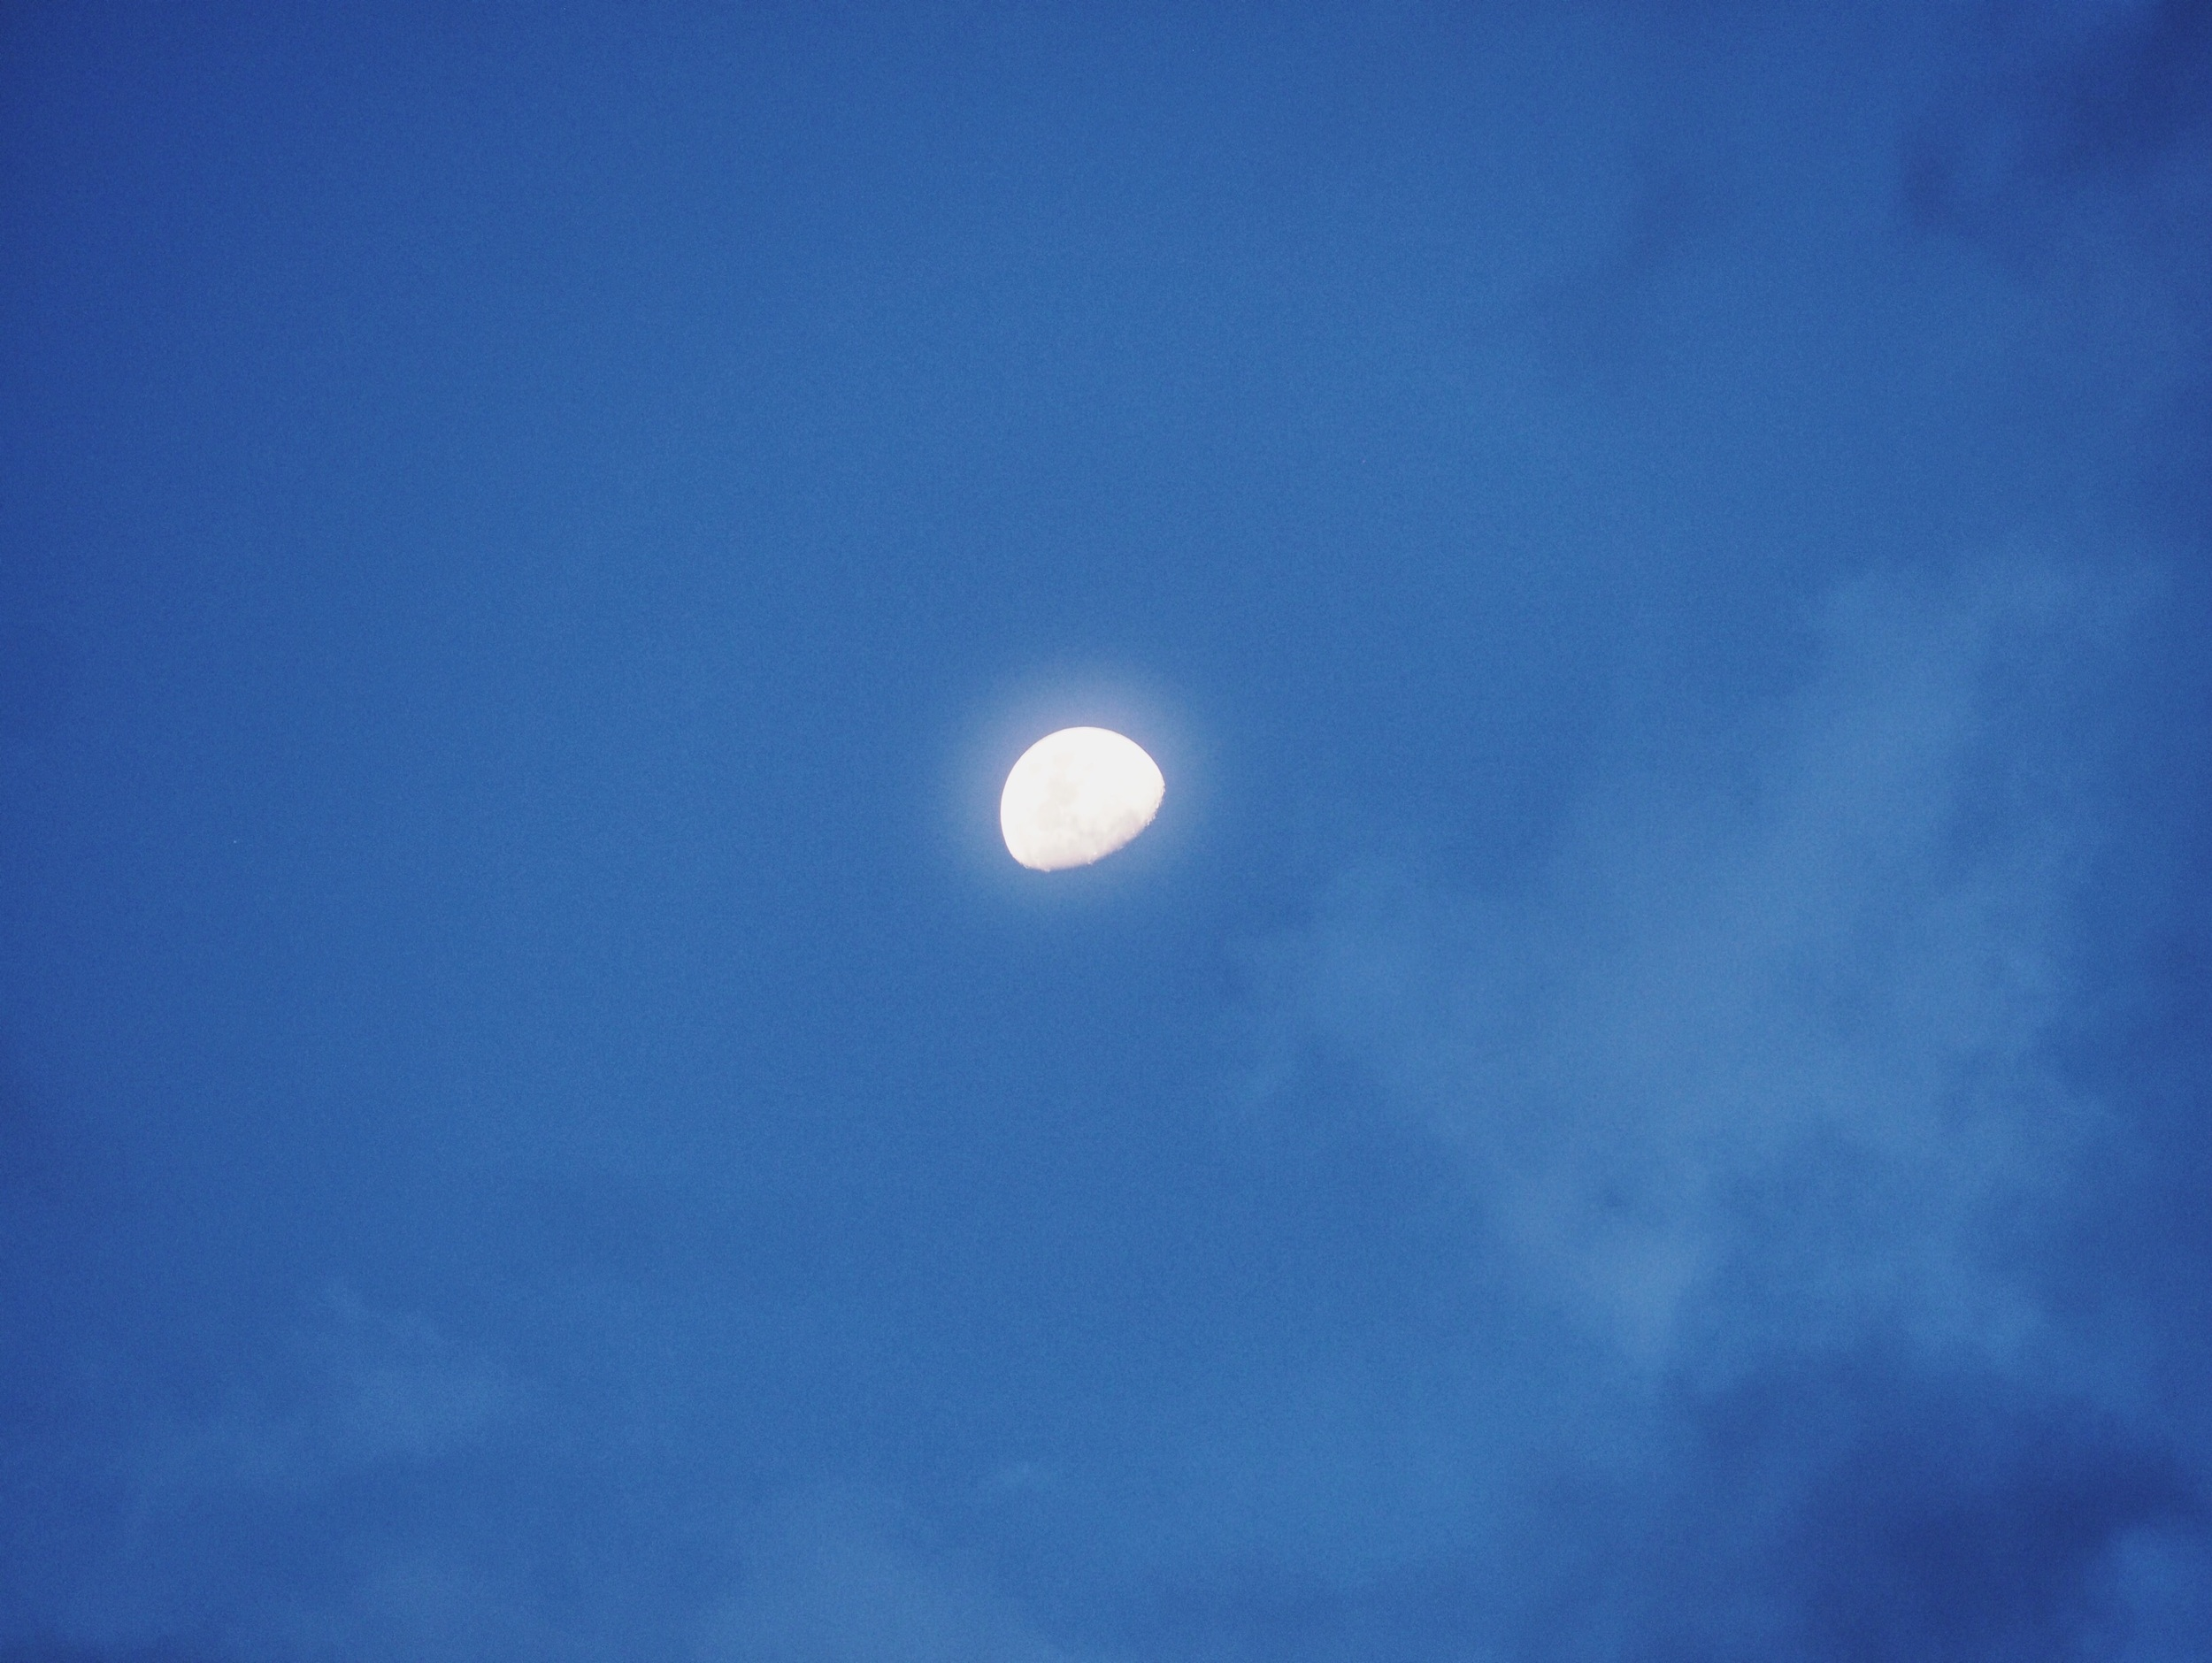 The moon keeps a watchful eye over our camp